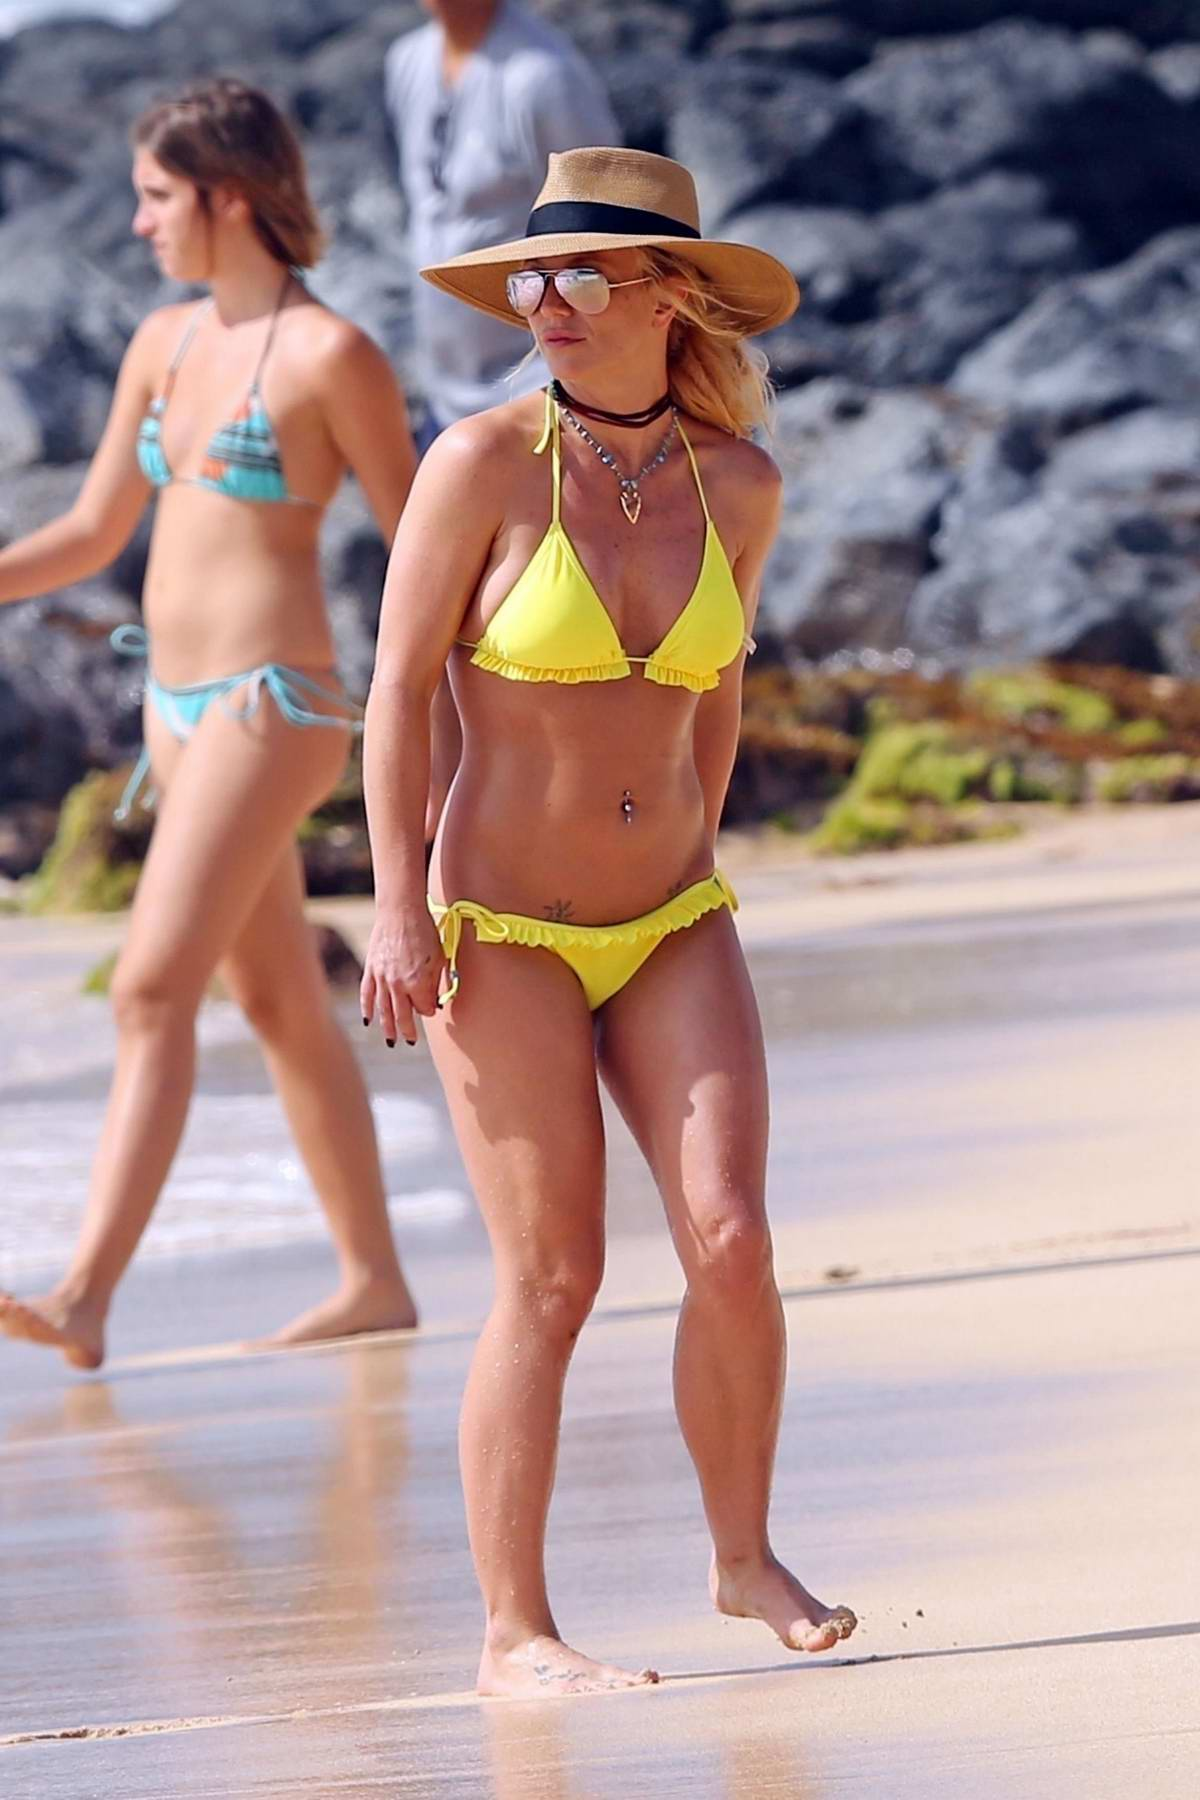 Opinion you britney spears bikini really. was